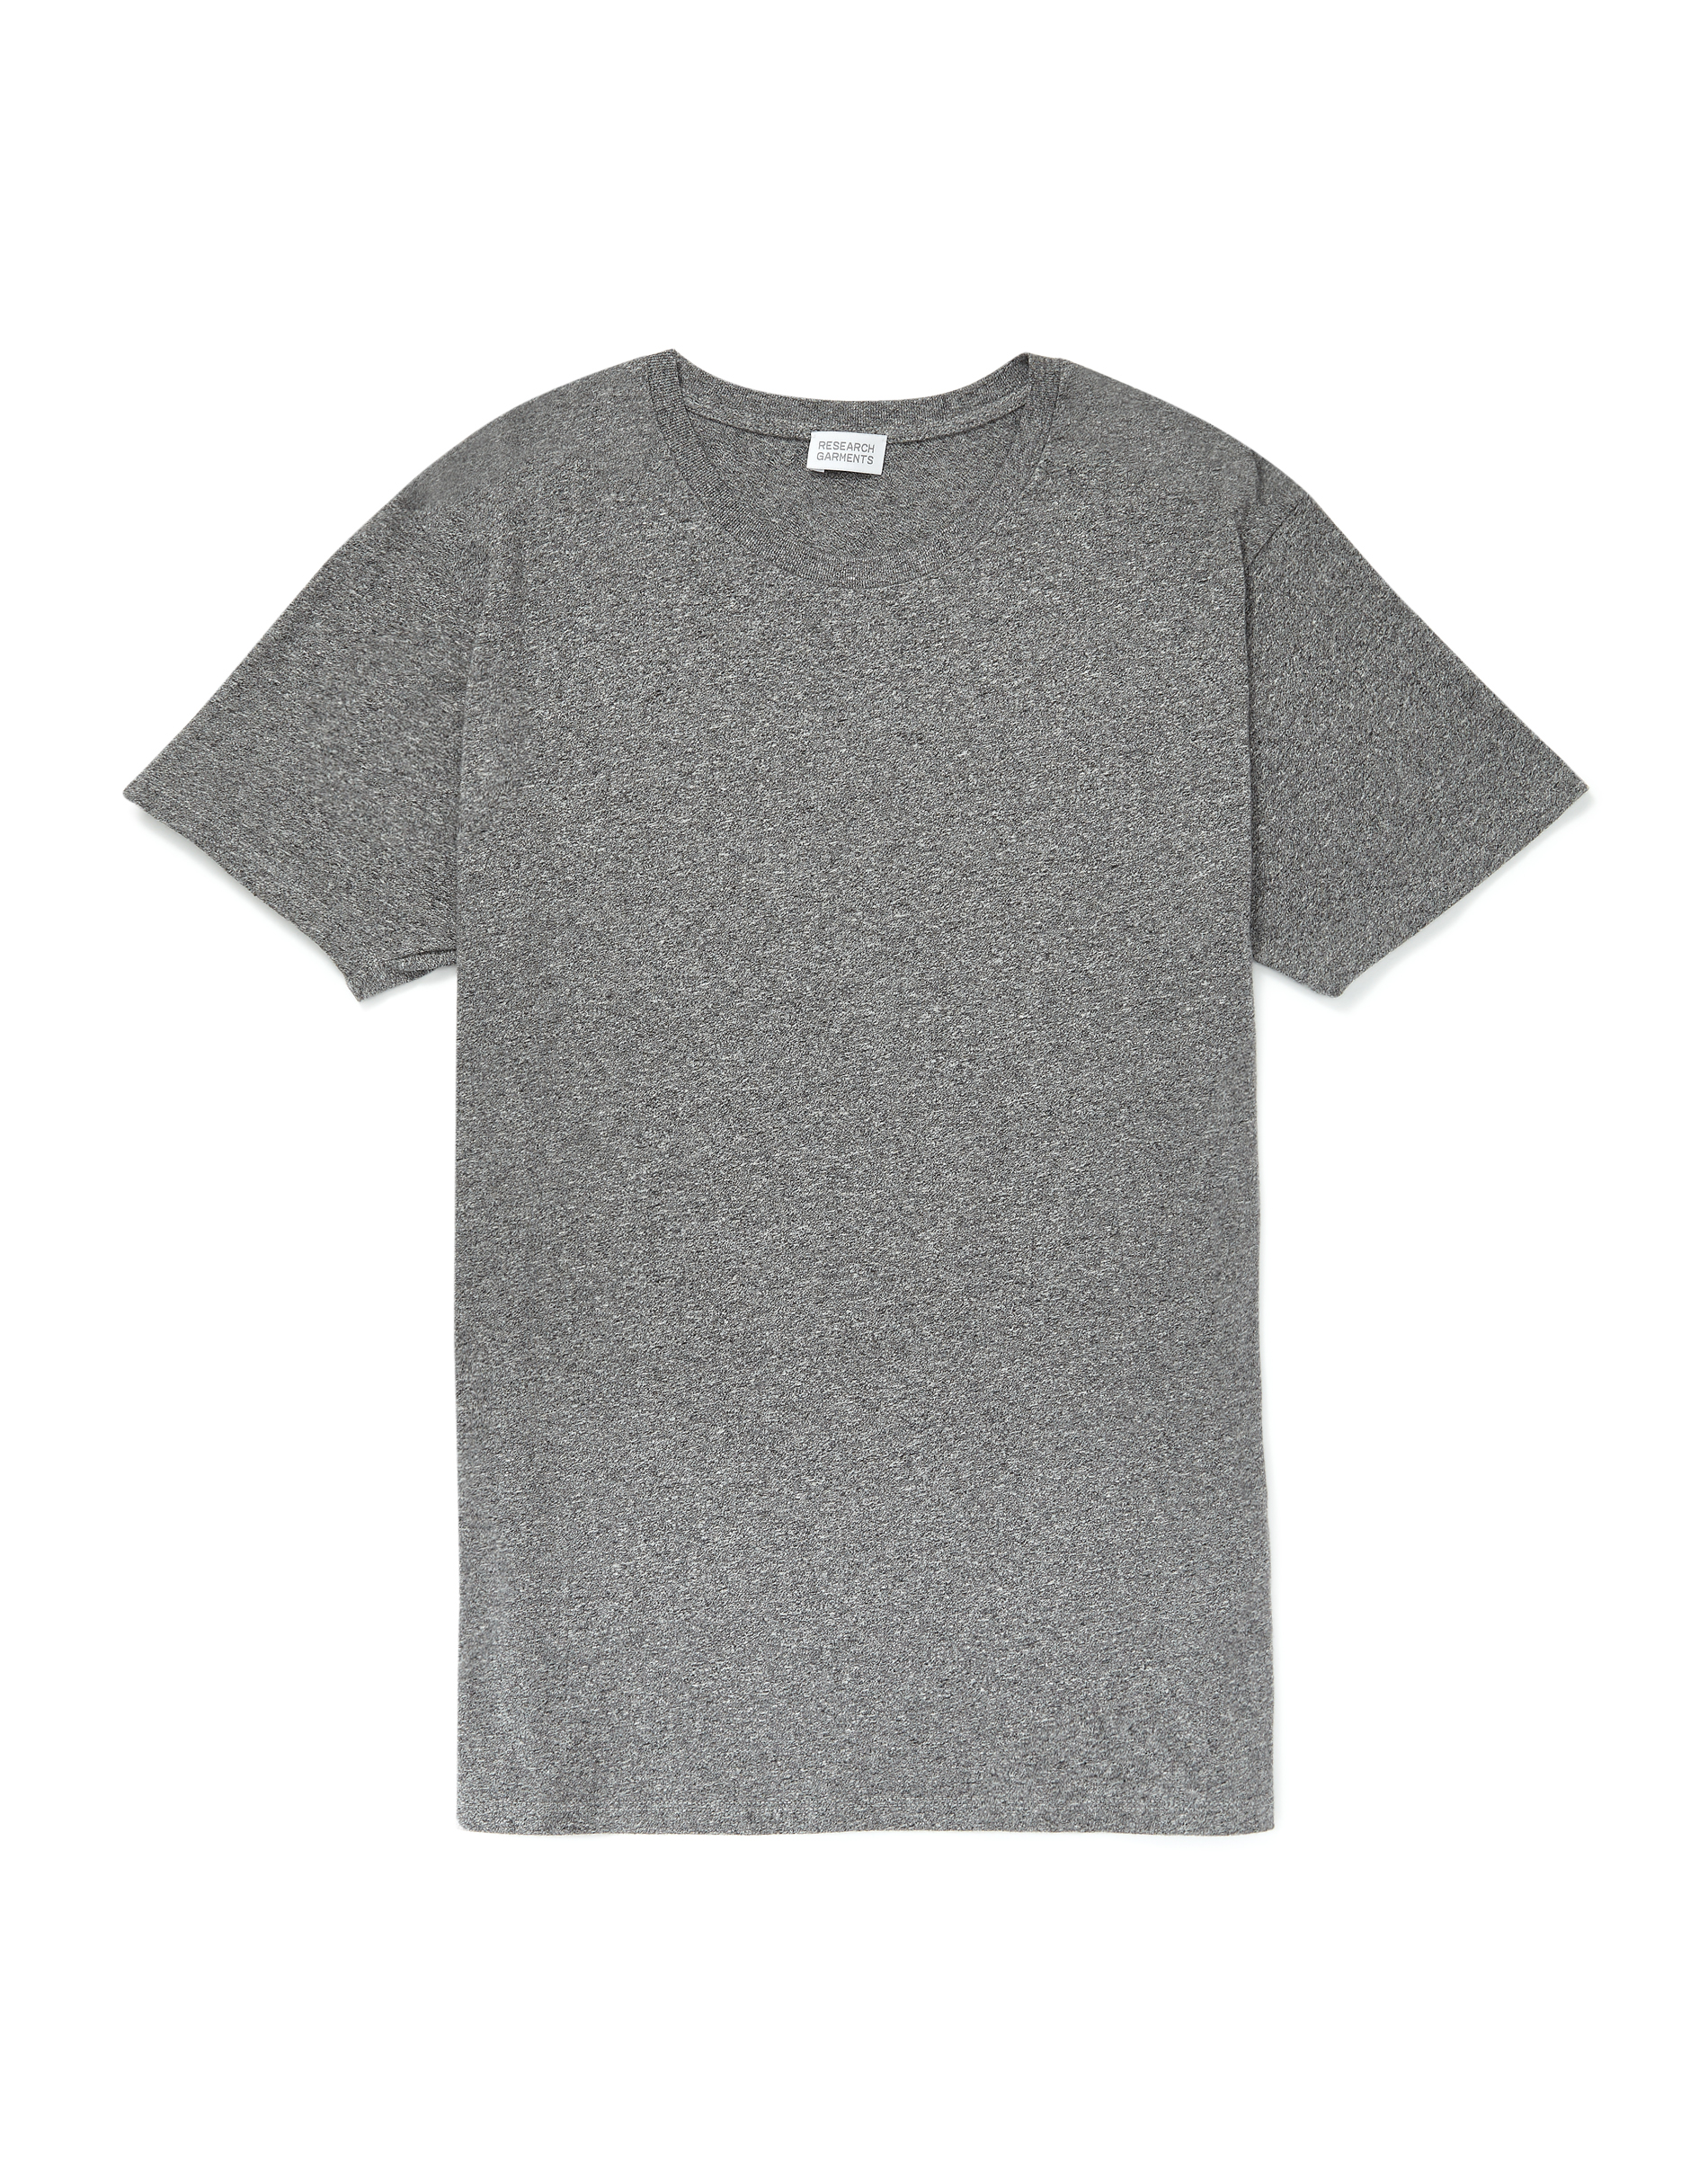 Research Garments Charcoal Marl The Perfect Textured T-shirt